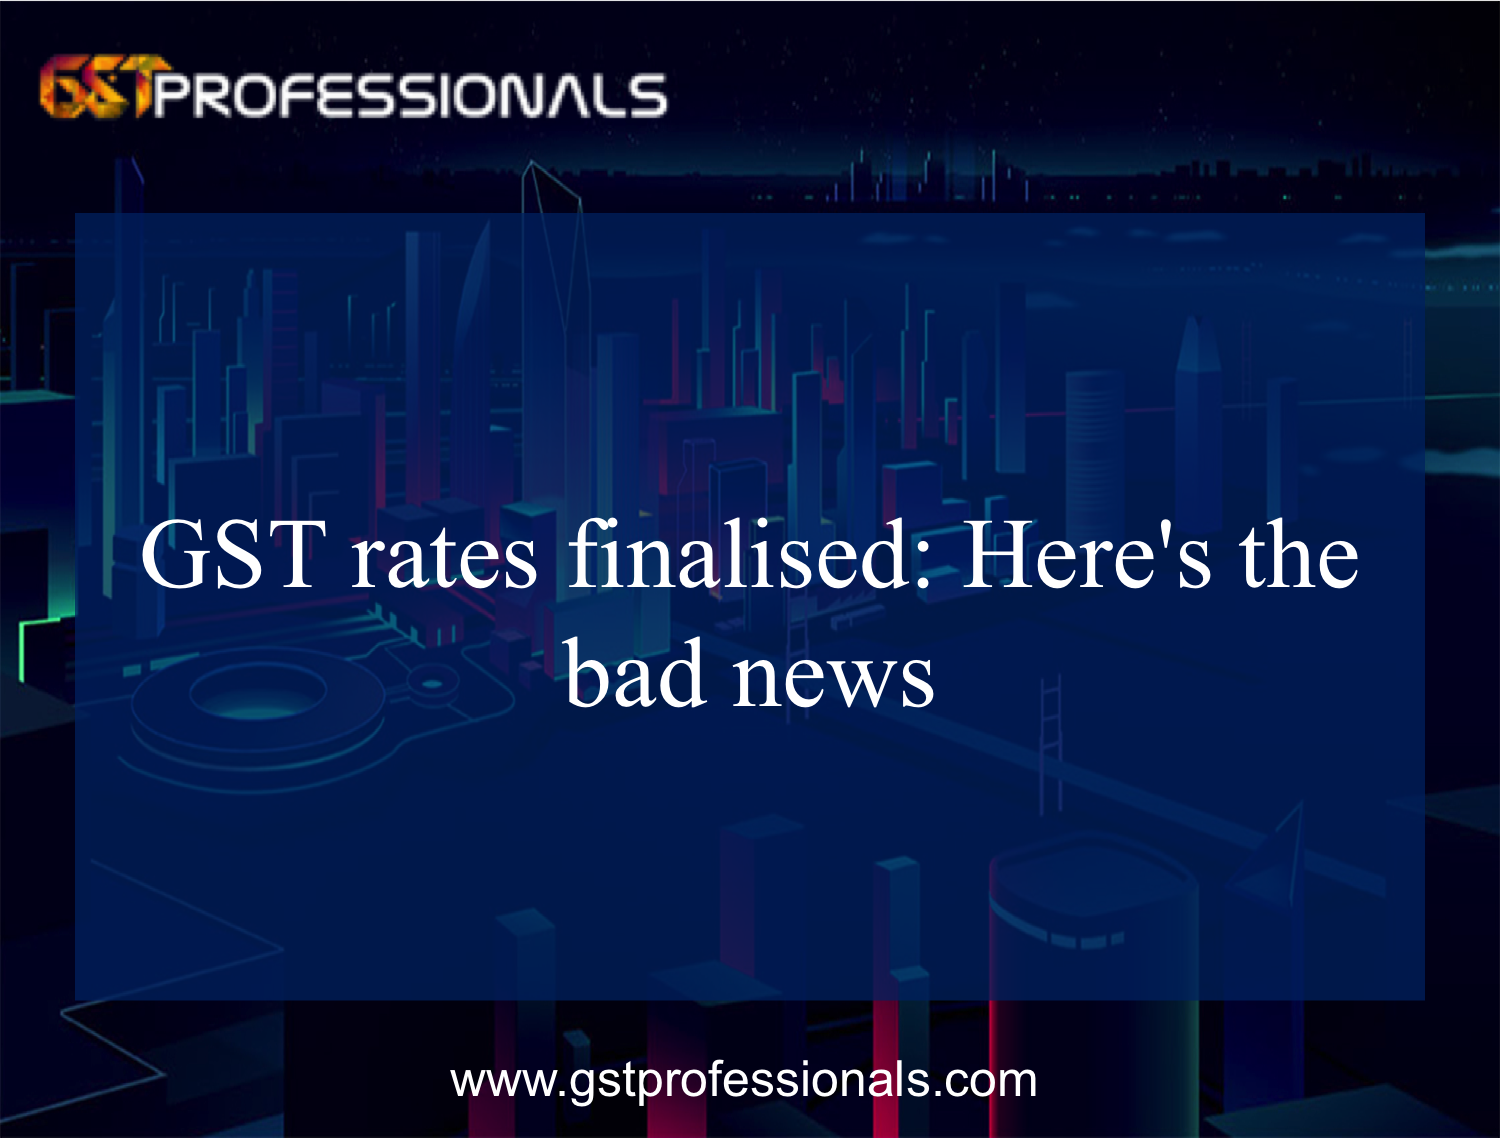 GST rates finalised: Here's the bad news